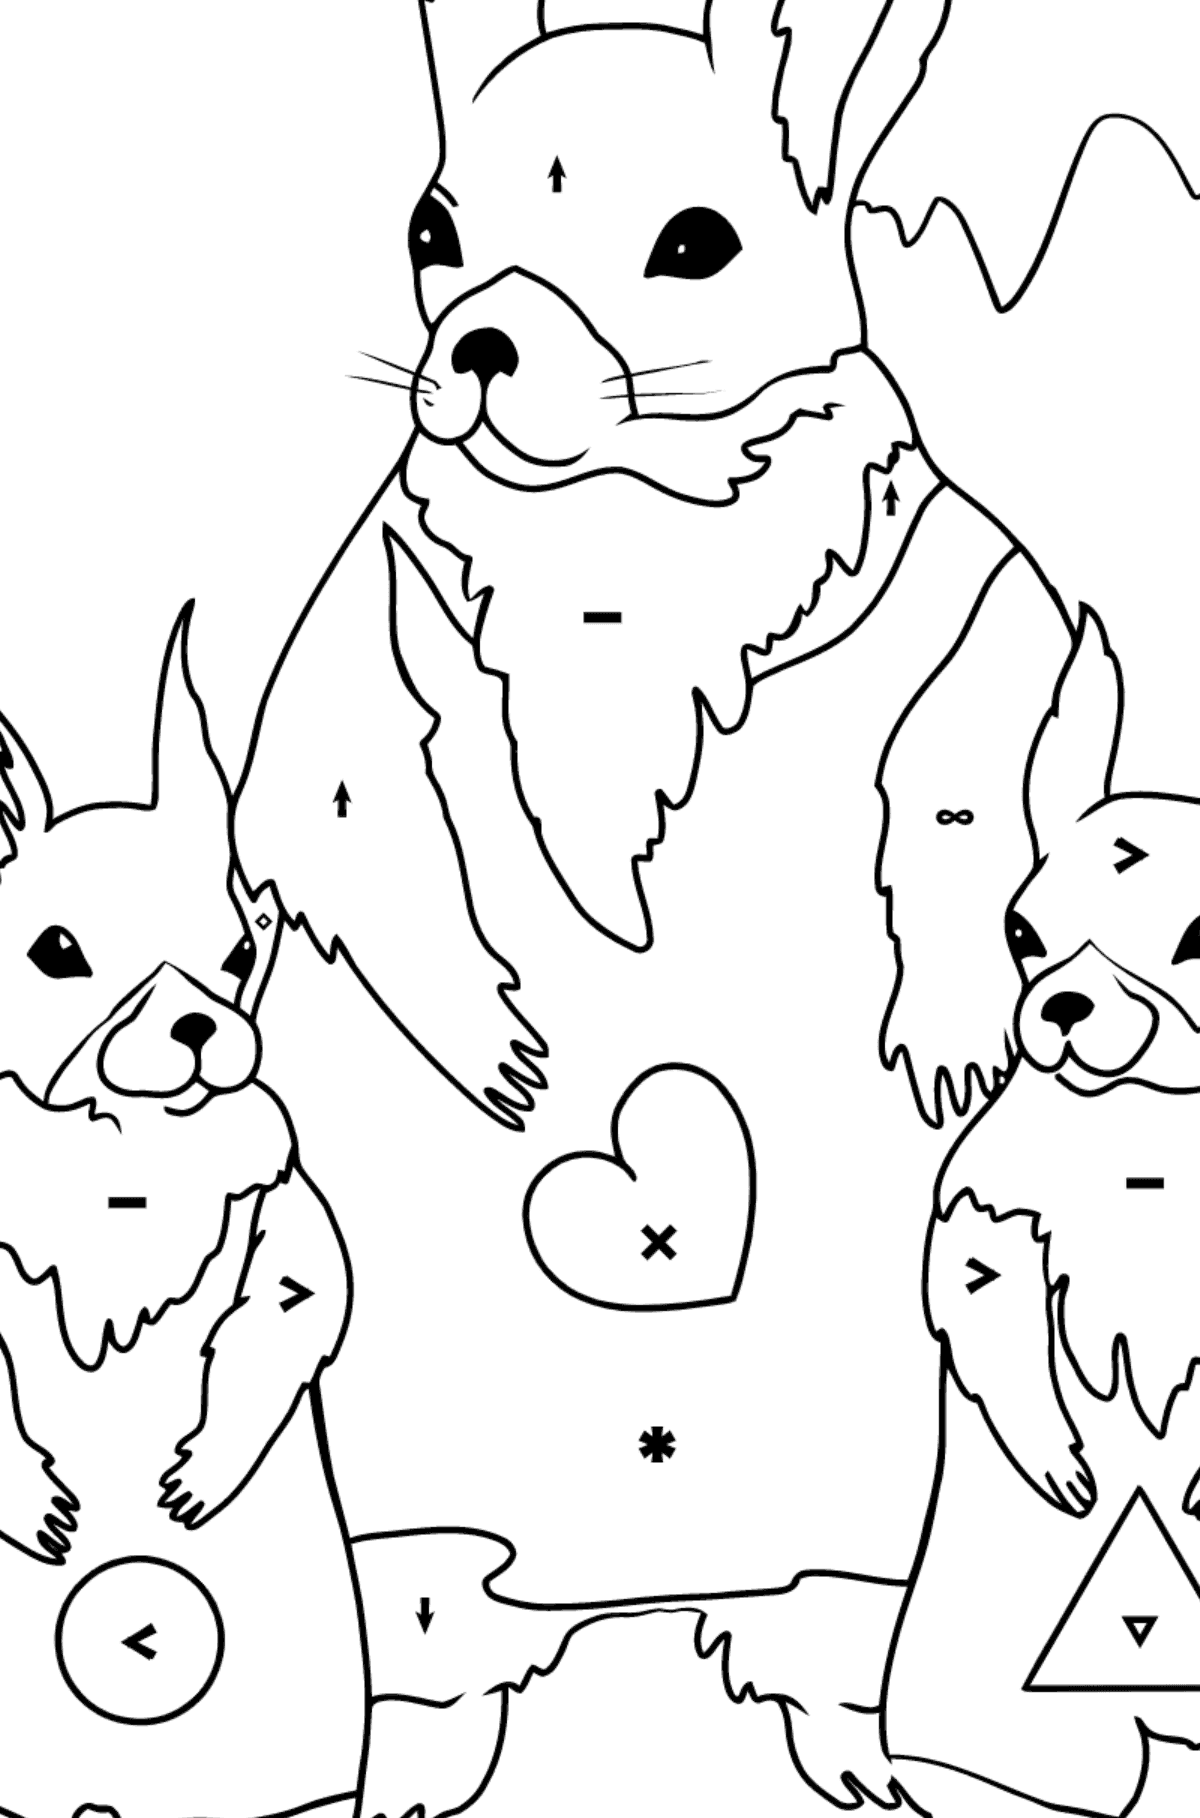 Spring Coloring Page - Beautiful Squirrels for Children  - Color by Special Symbols